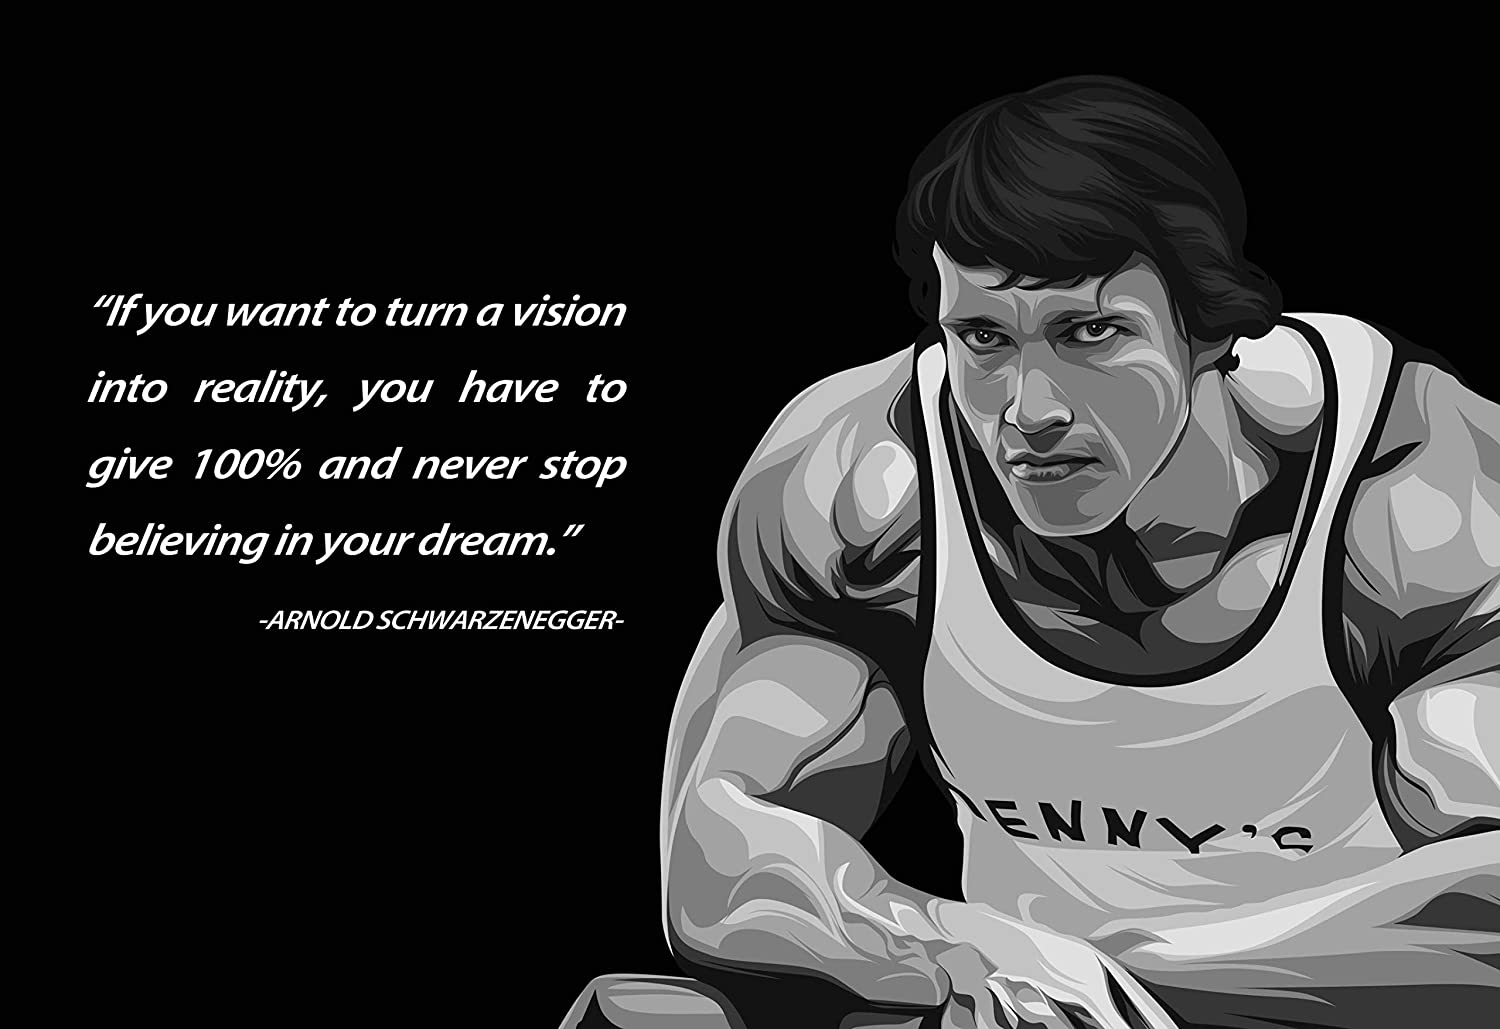 """If you want to turn a vision into reality, you have to give 100% and never stop believing in your dream."" -Arnold Schwarzenegger [1500×1029]"